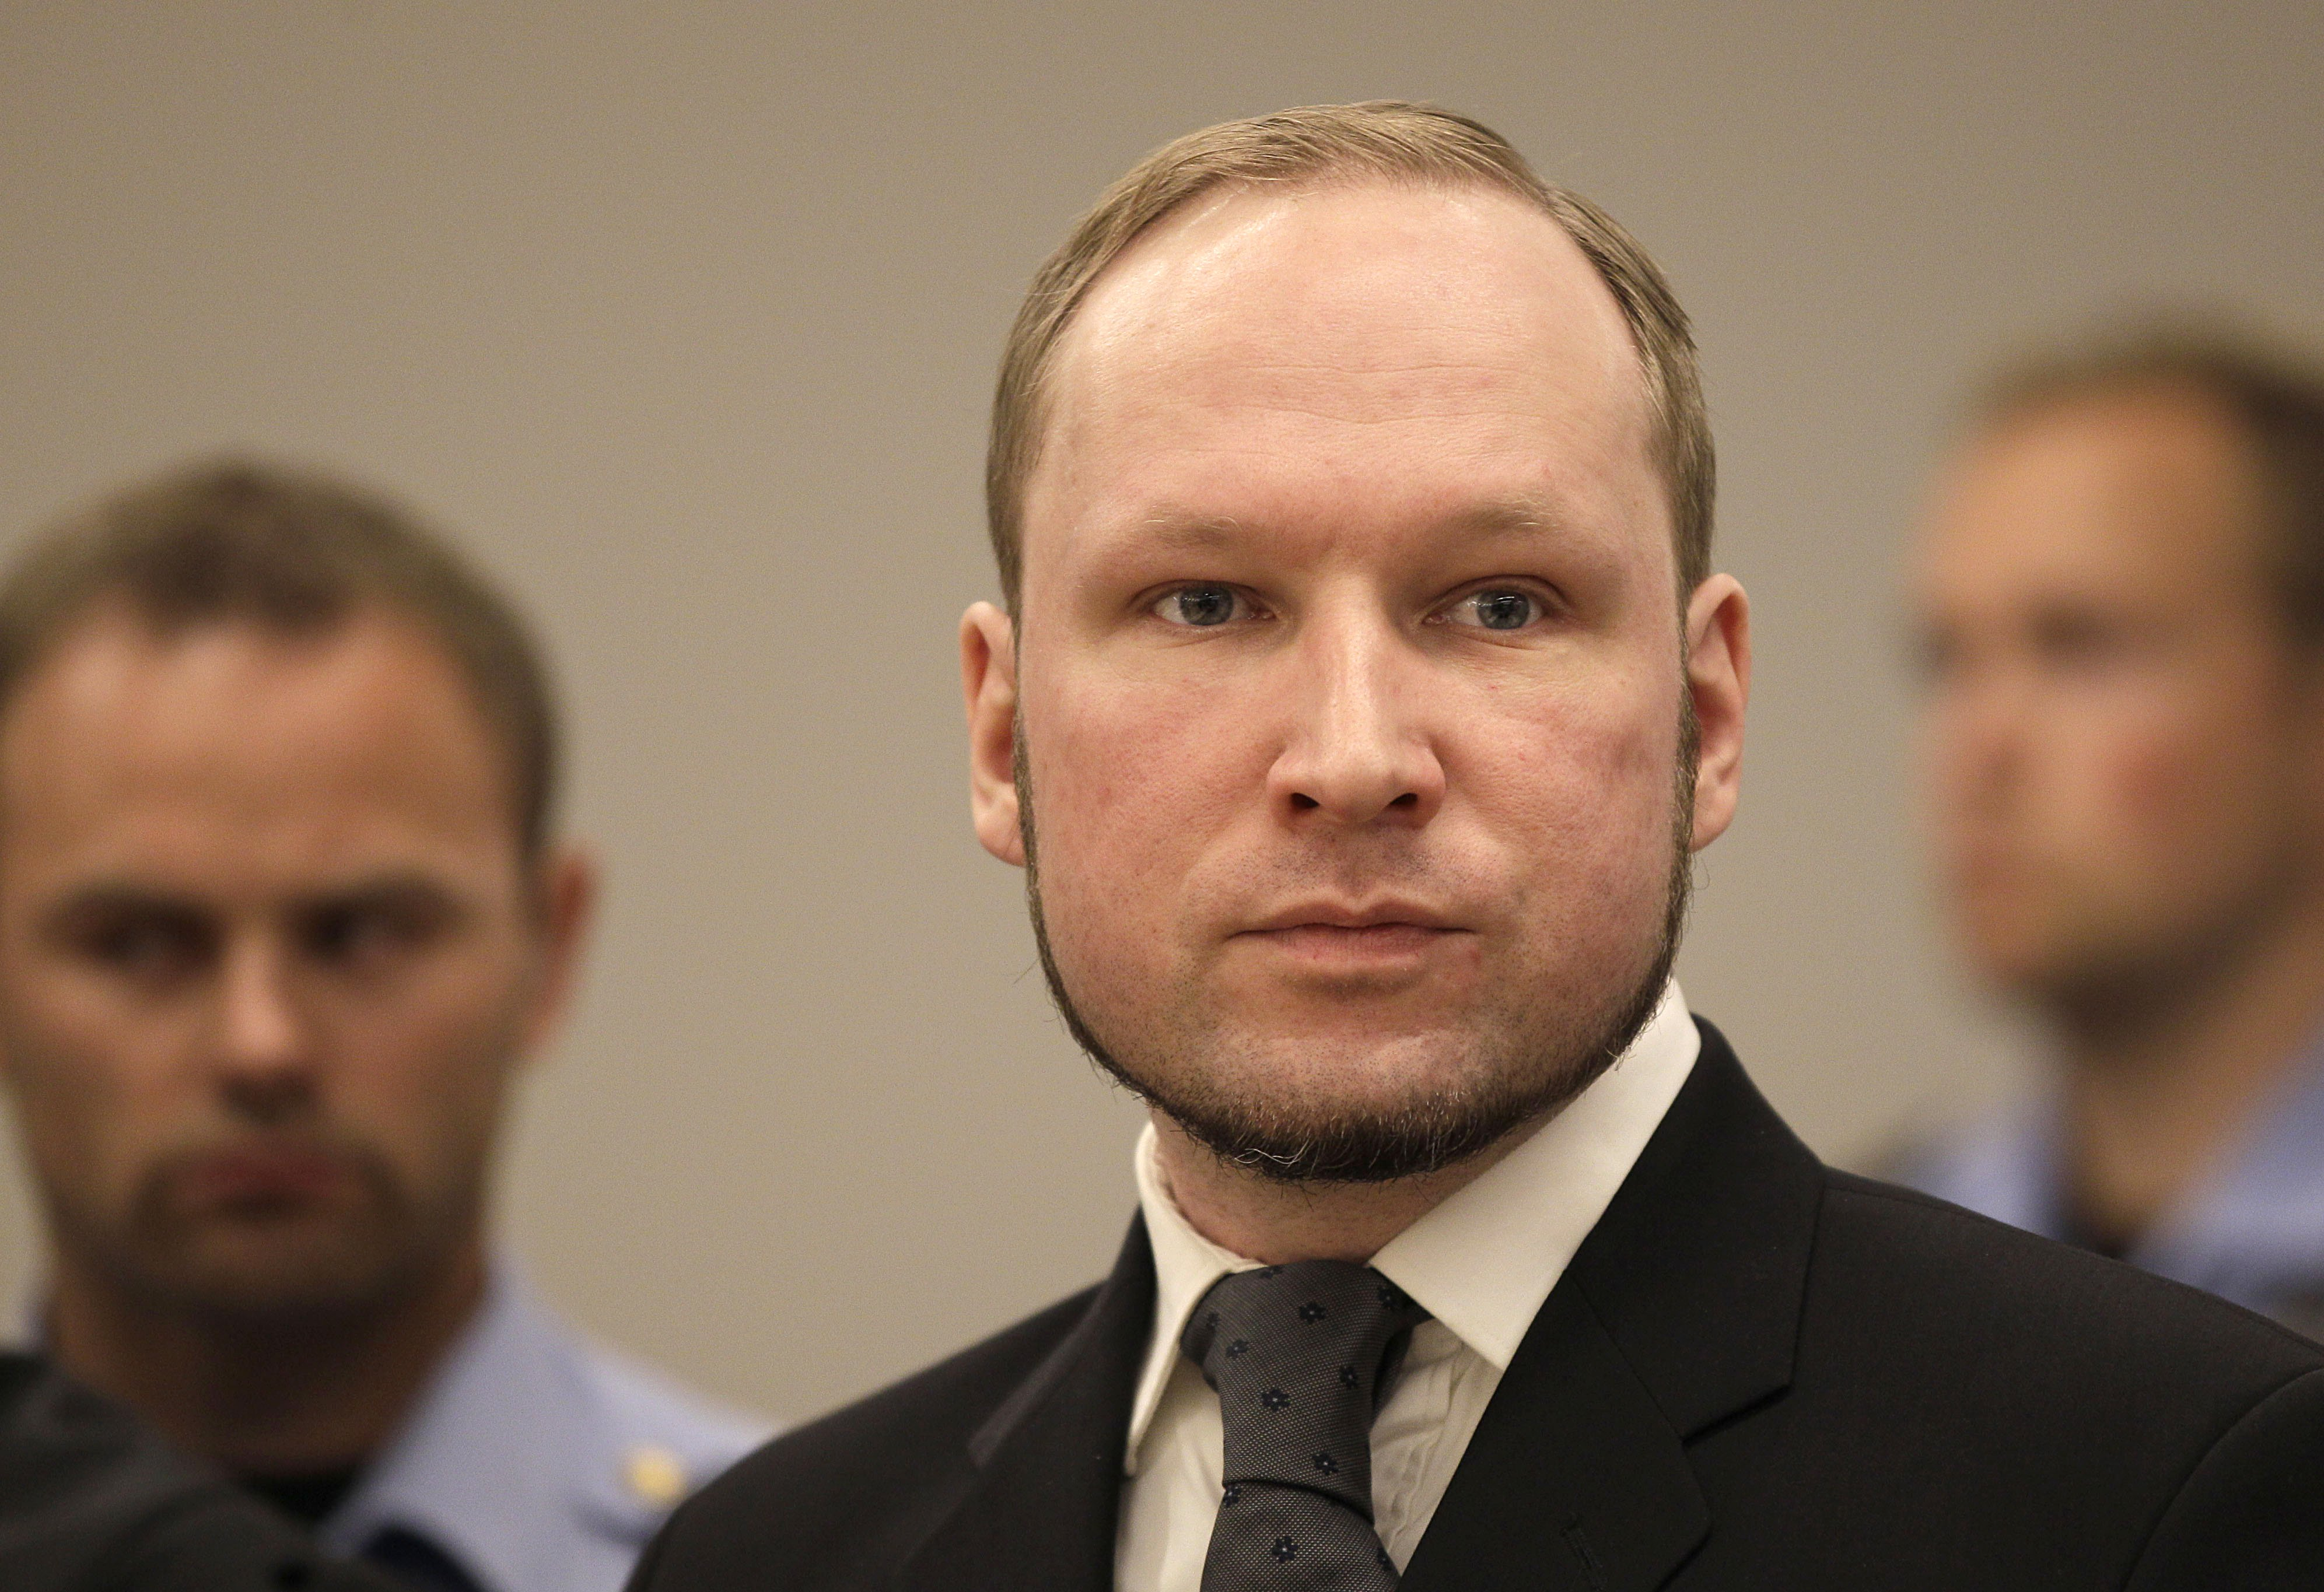 Anders Behring Breivik listens to the judge in the courtroom, in Oslo, Norway on Aug. 24, 2012.